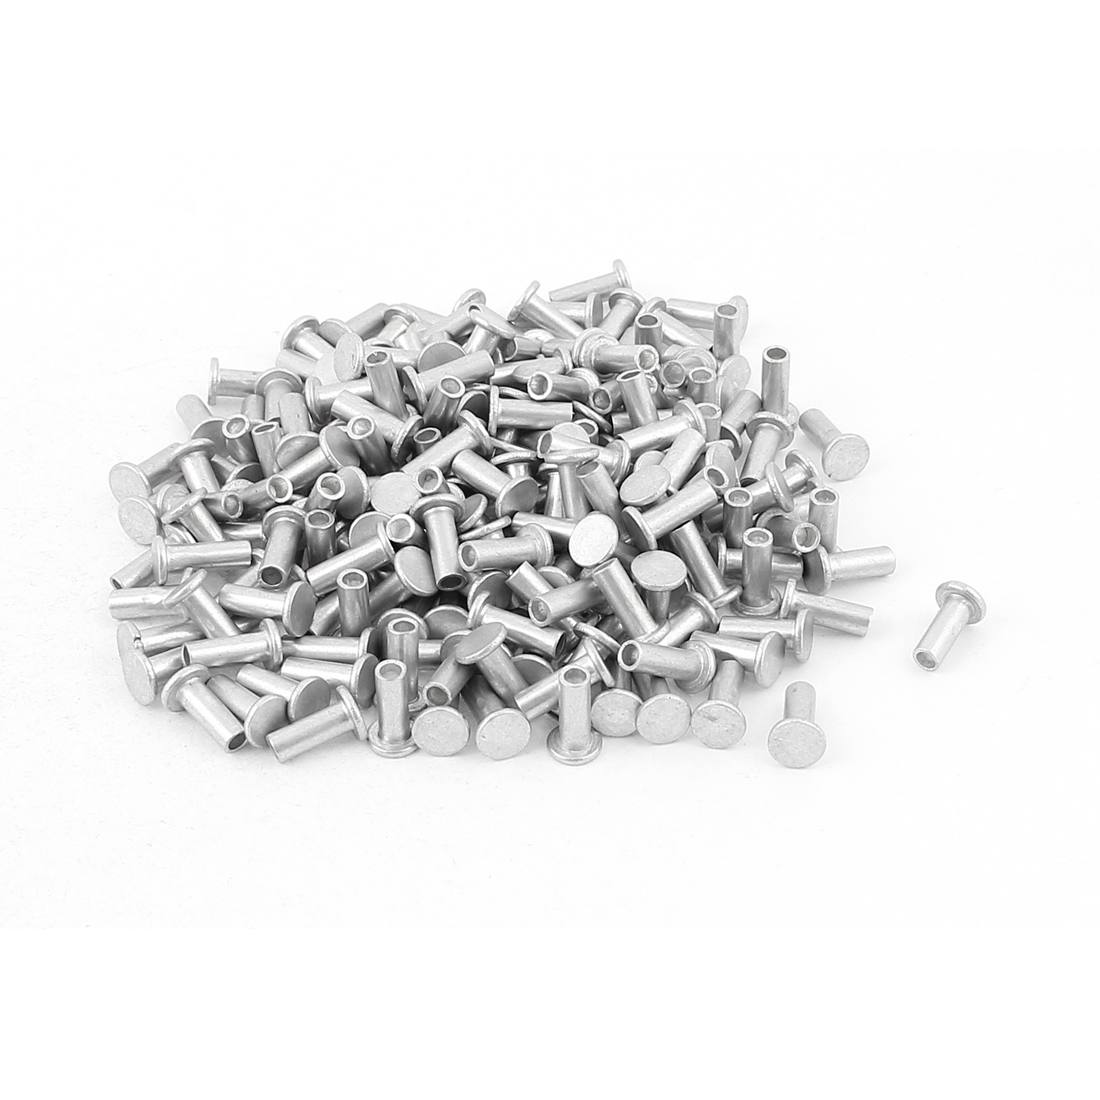 200 Pcs M4 x 10mm Aluminum Flat Head Semi-Tubular Rivets Silver Tone